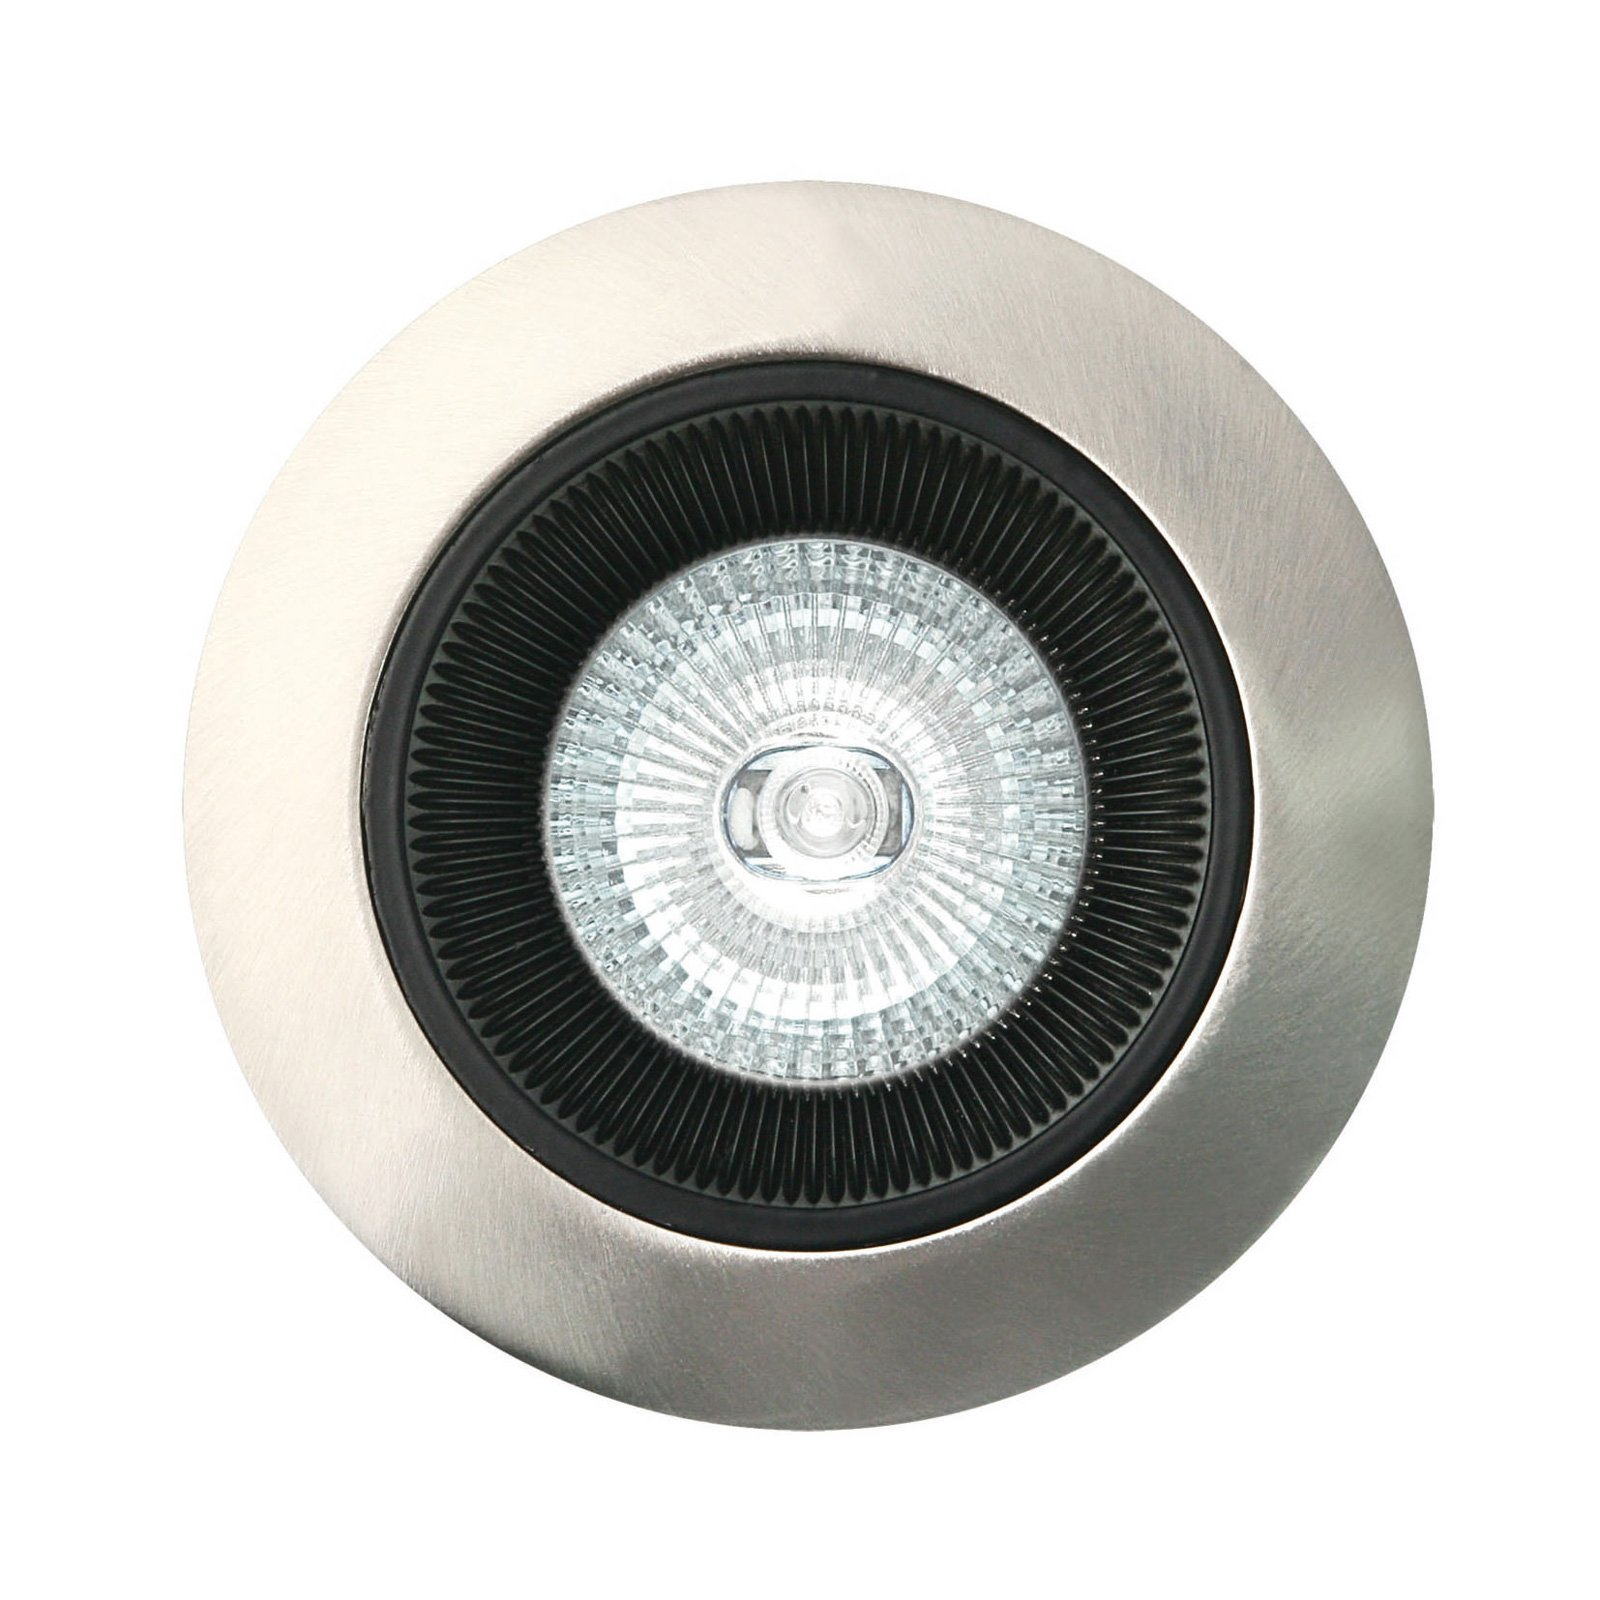 Leroy Merlin Spot Lampadine Led E14 Leroy Merlin Lampade With Lampadine Led E14